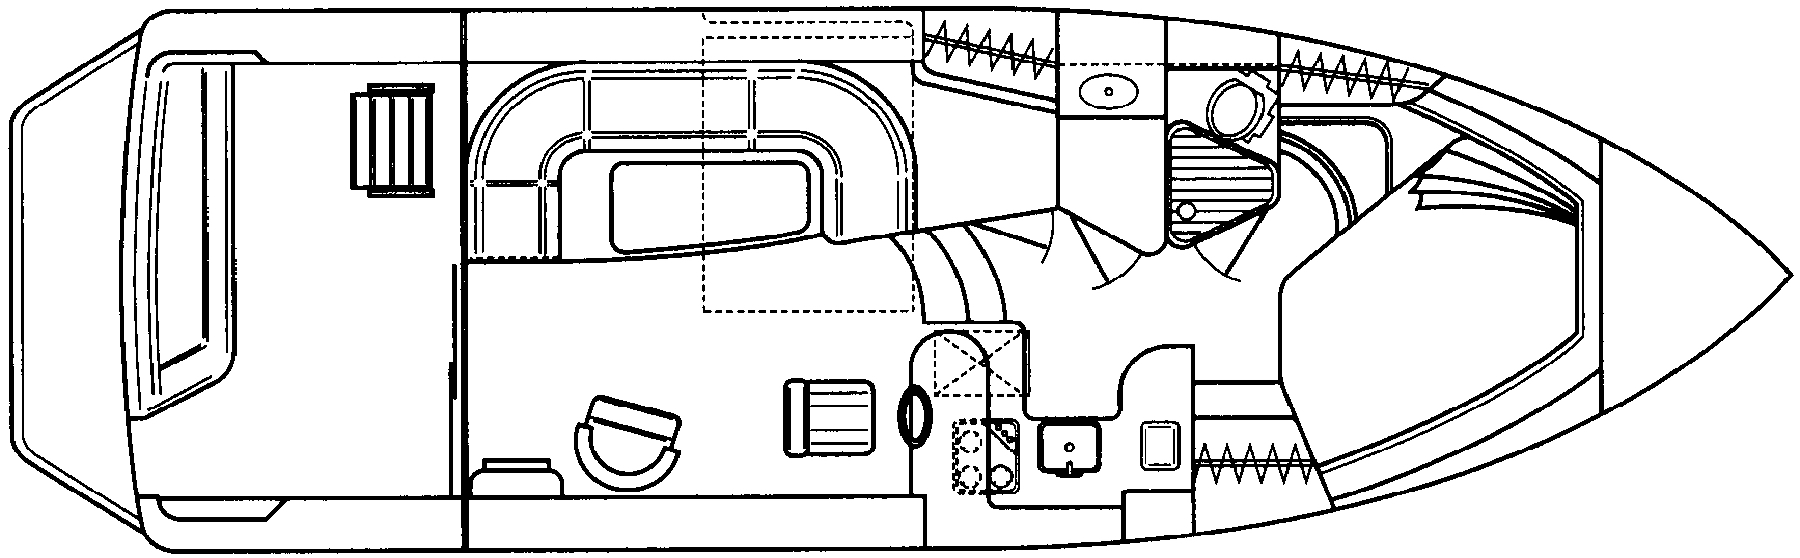 370 Sedan Bridge Floor Plan 1